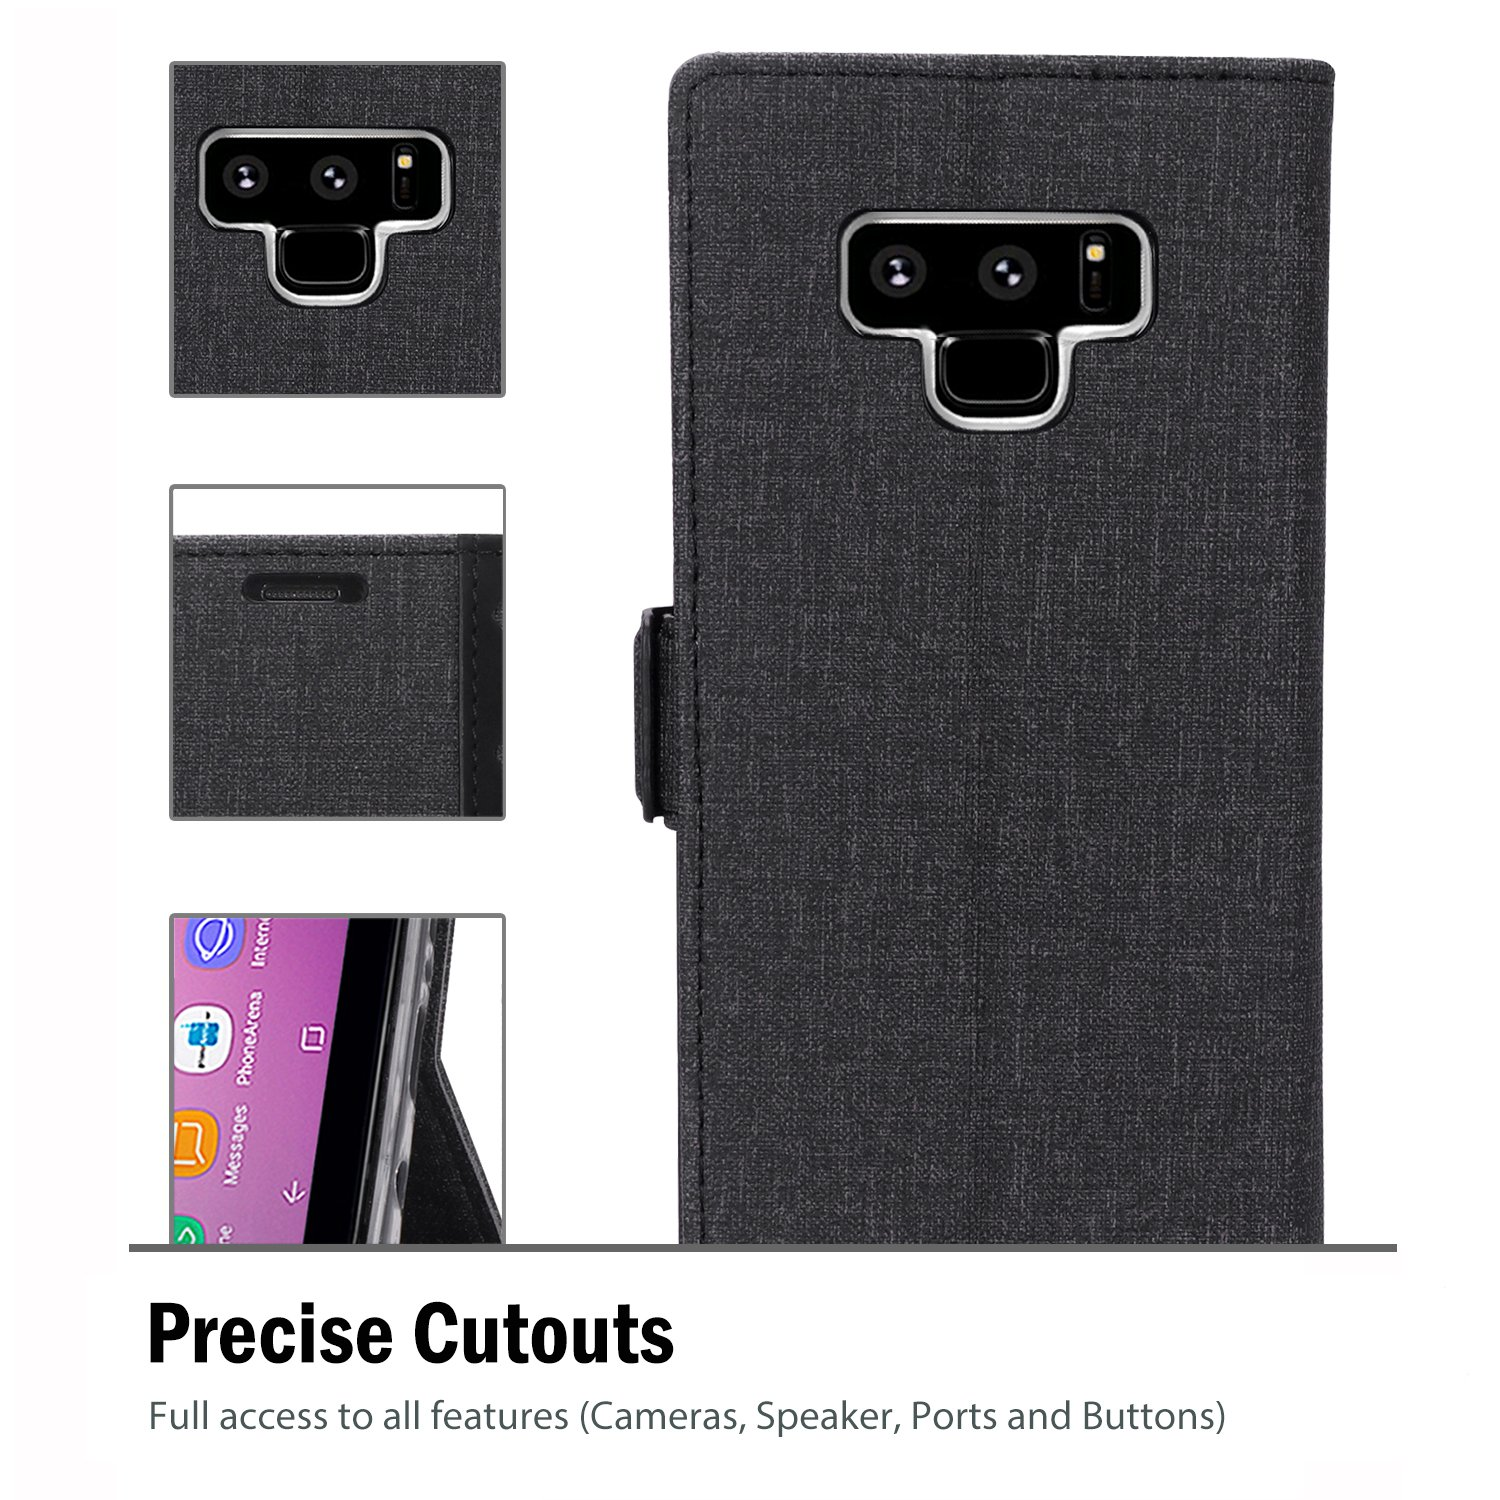 Black ProCase Folio Folding Wallet Case Flip Cover Protective Case for Galaxy Note 8 2017 Release Samsung Galaxy Note 8 Wallet Case with Card Slots and Kickstand